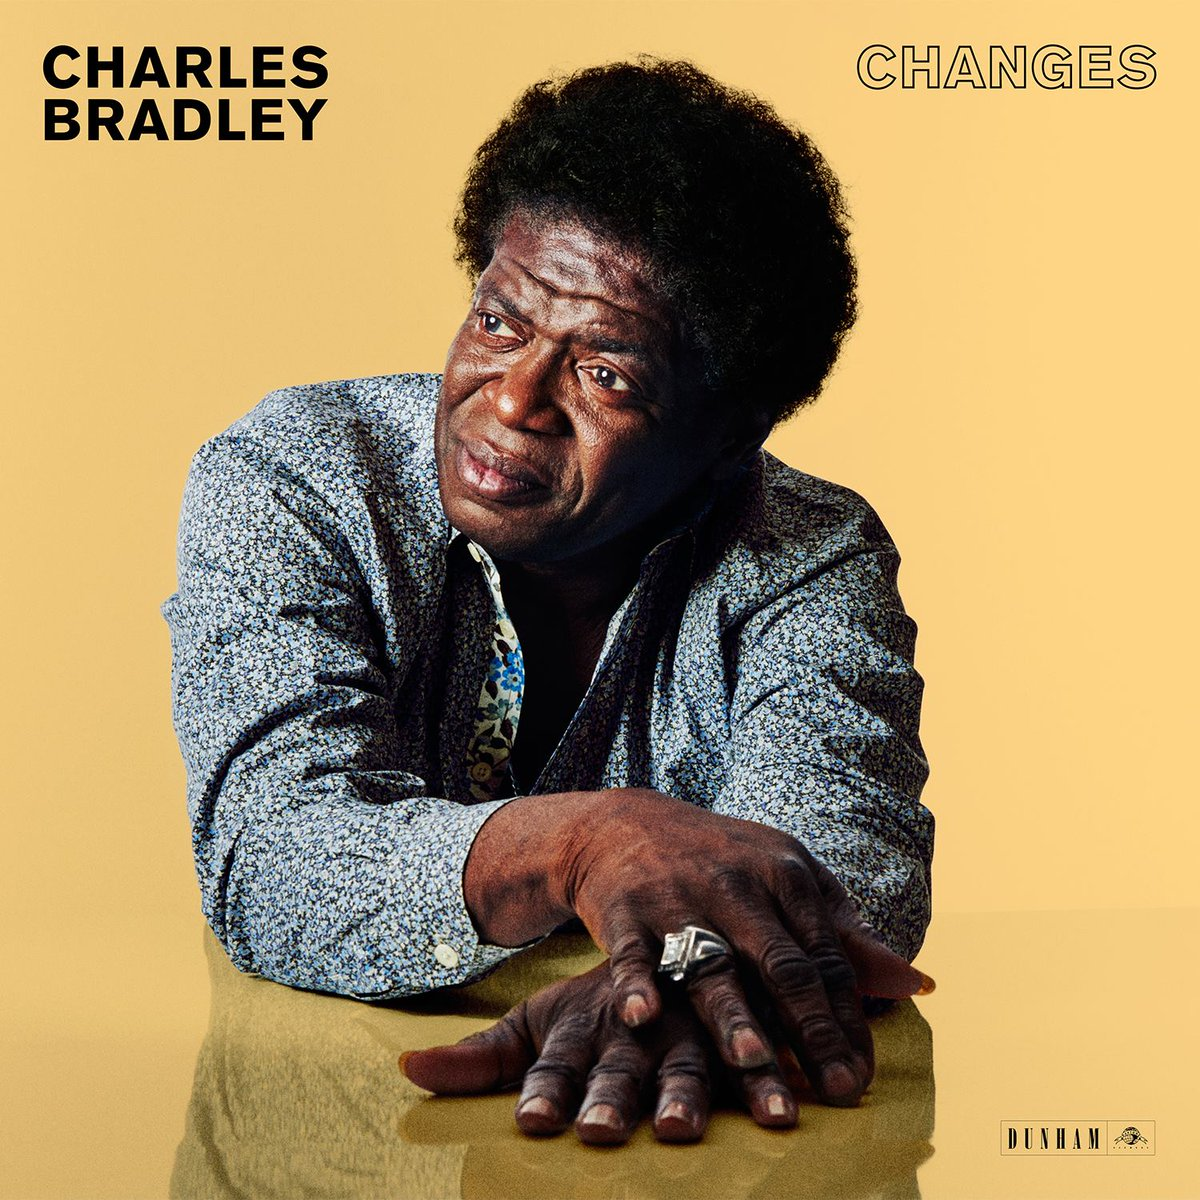 Changes is out April 1st! https://t.co/xP9rigS3ZE. RT to win an autographed test pressing #charlesforchange https://t.co/yAHfqbEZ67